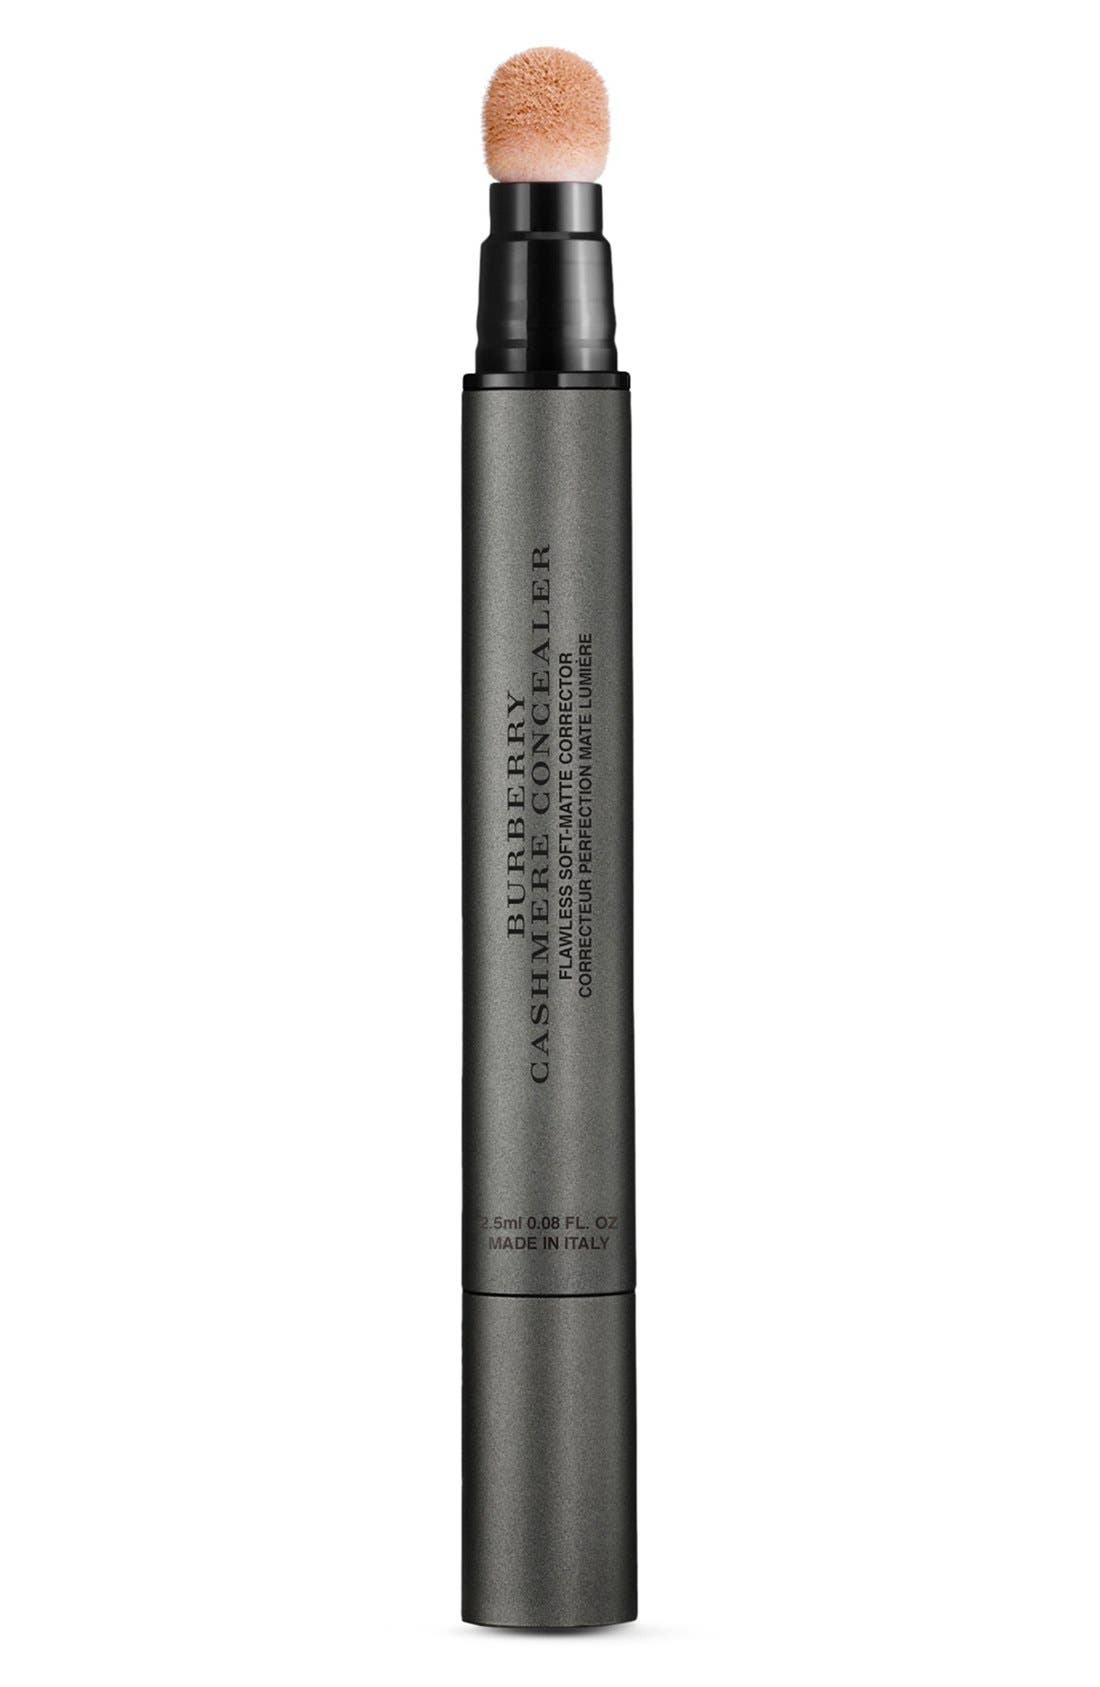 Burberry Beauty 'Cashmere' Concealer